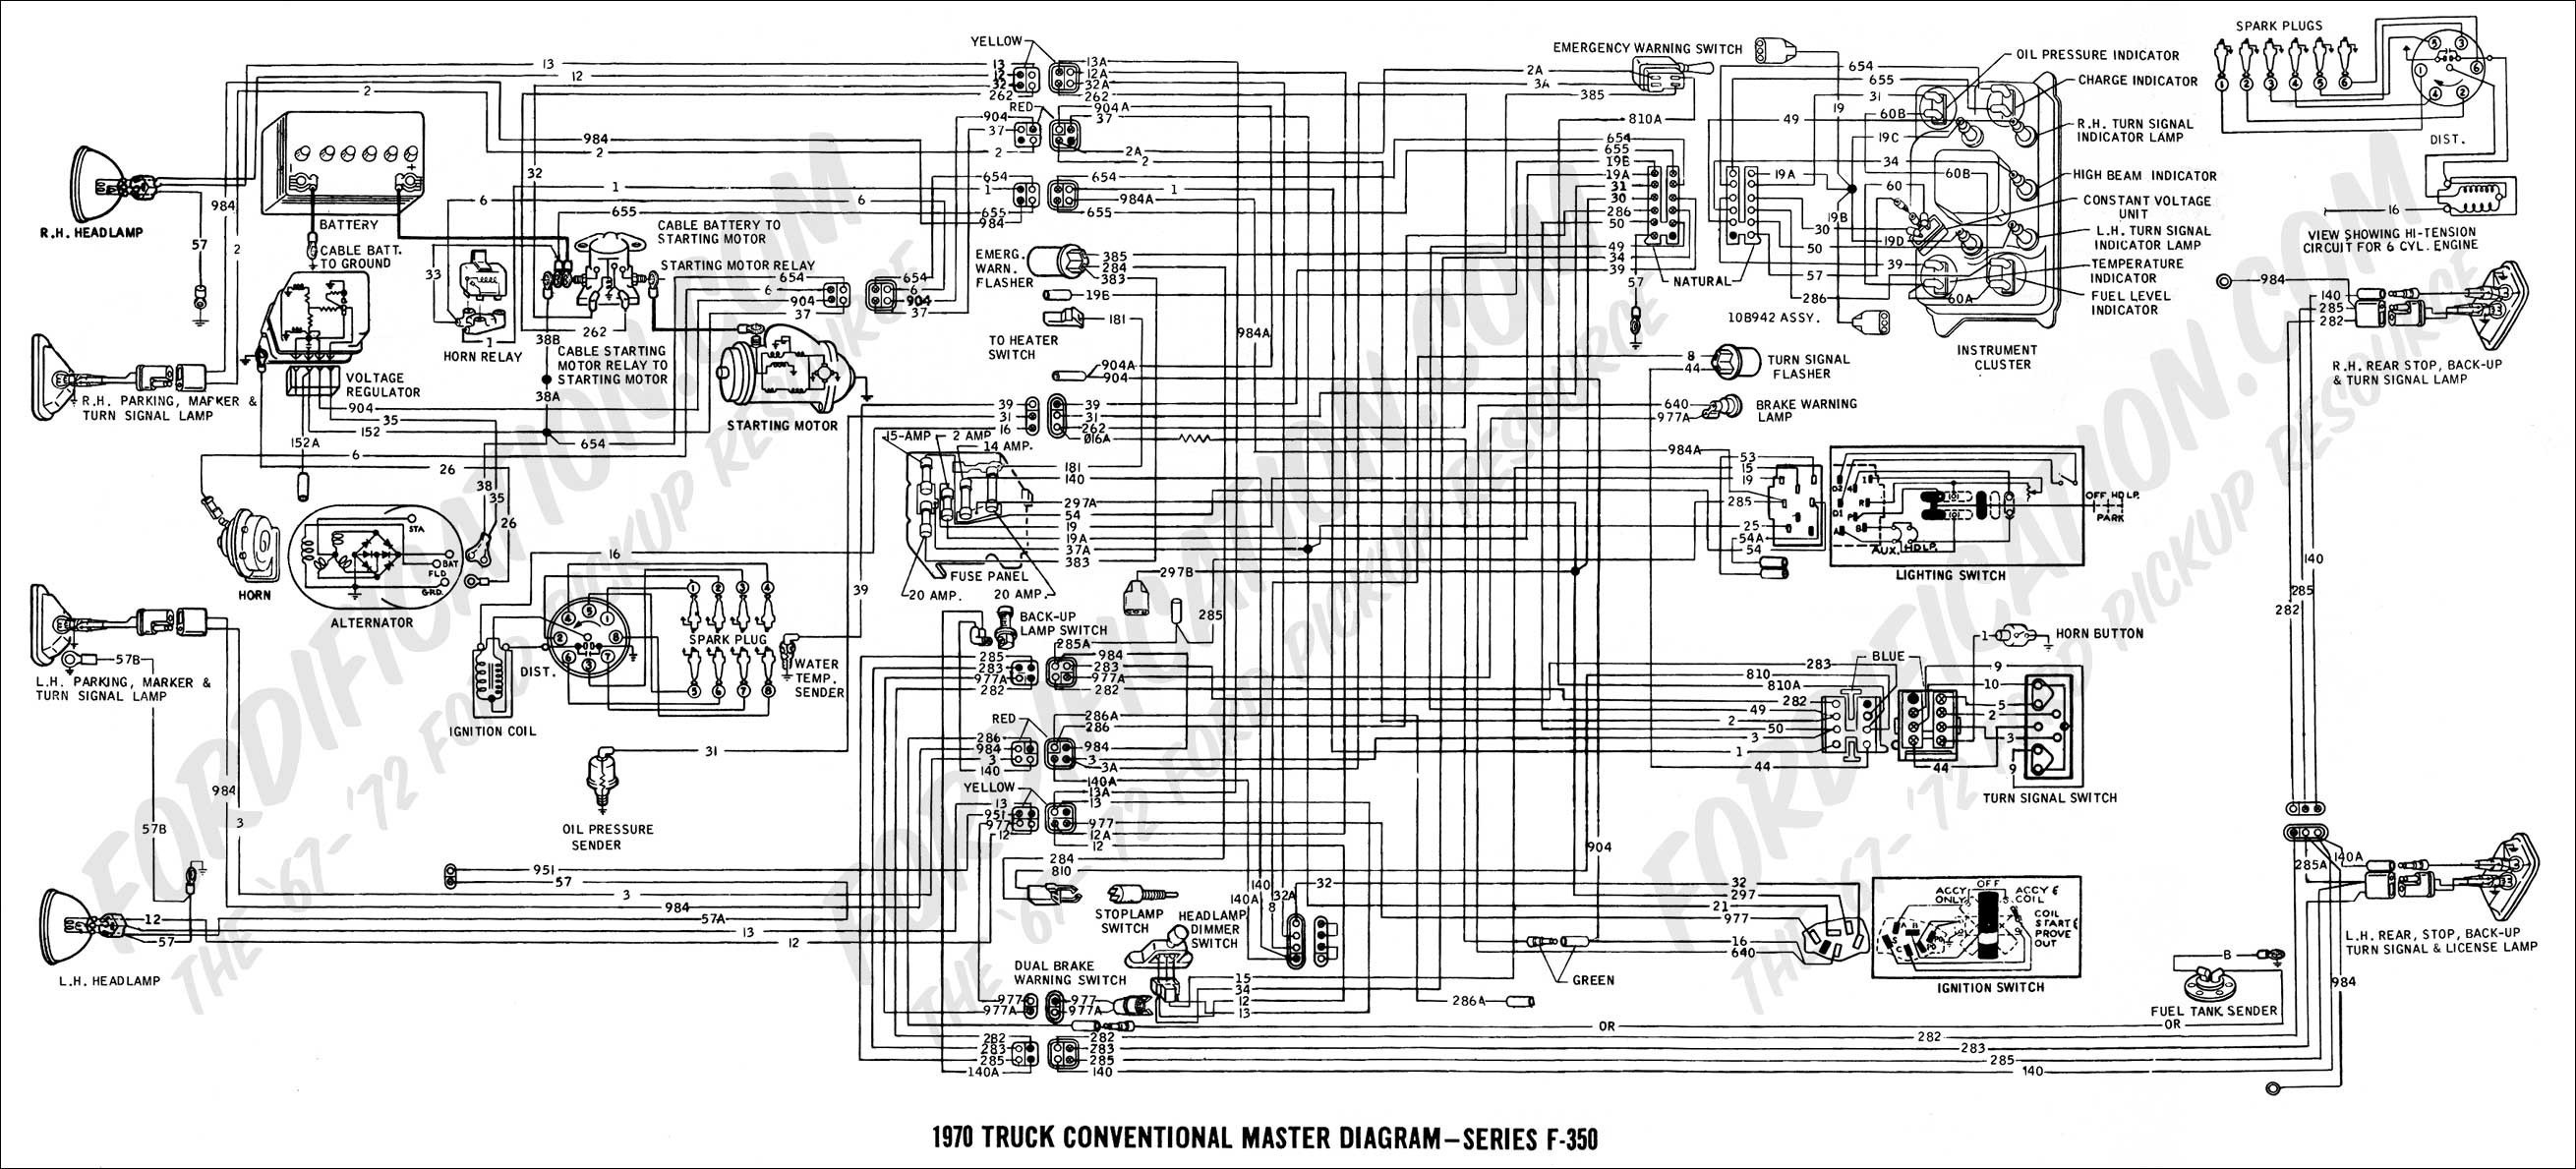 A92 2003 Ford Ranger Engine Diagram